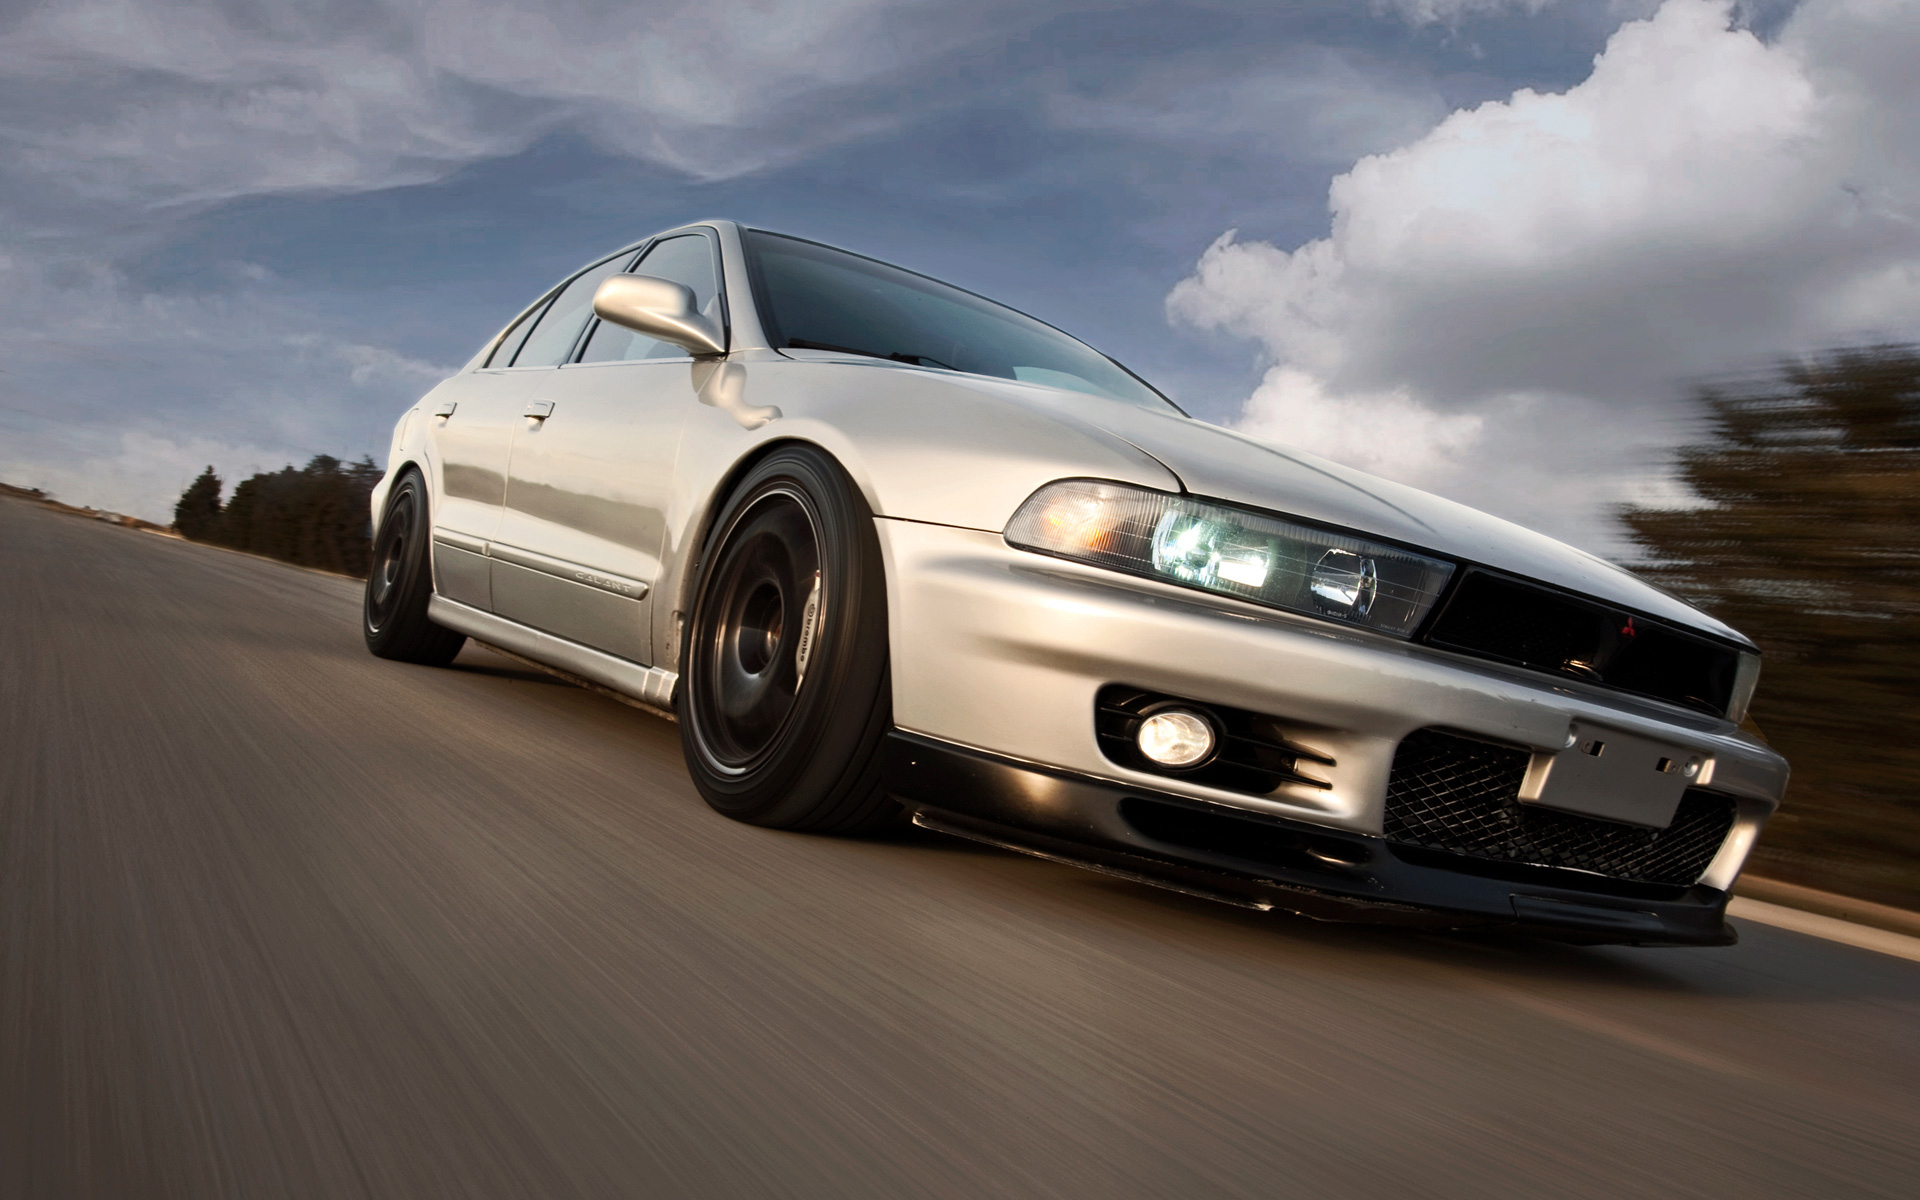 cars Mitsubishi vehicles Mitsubishi HD Wallpaper